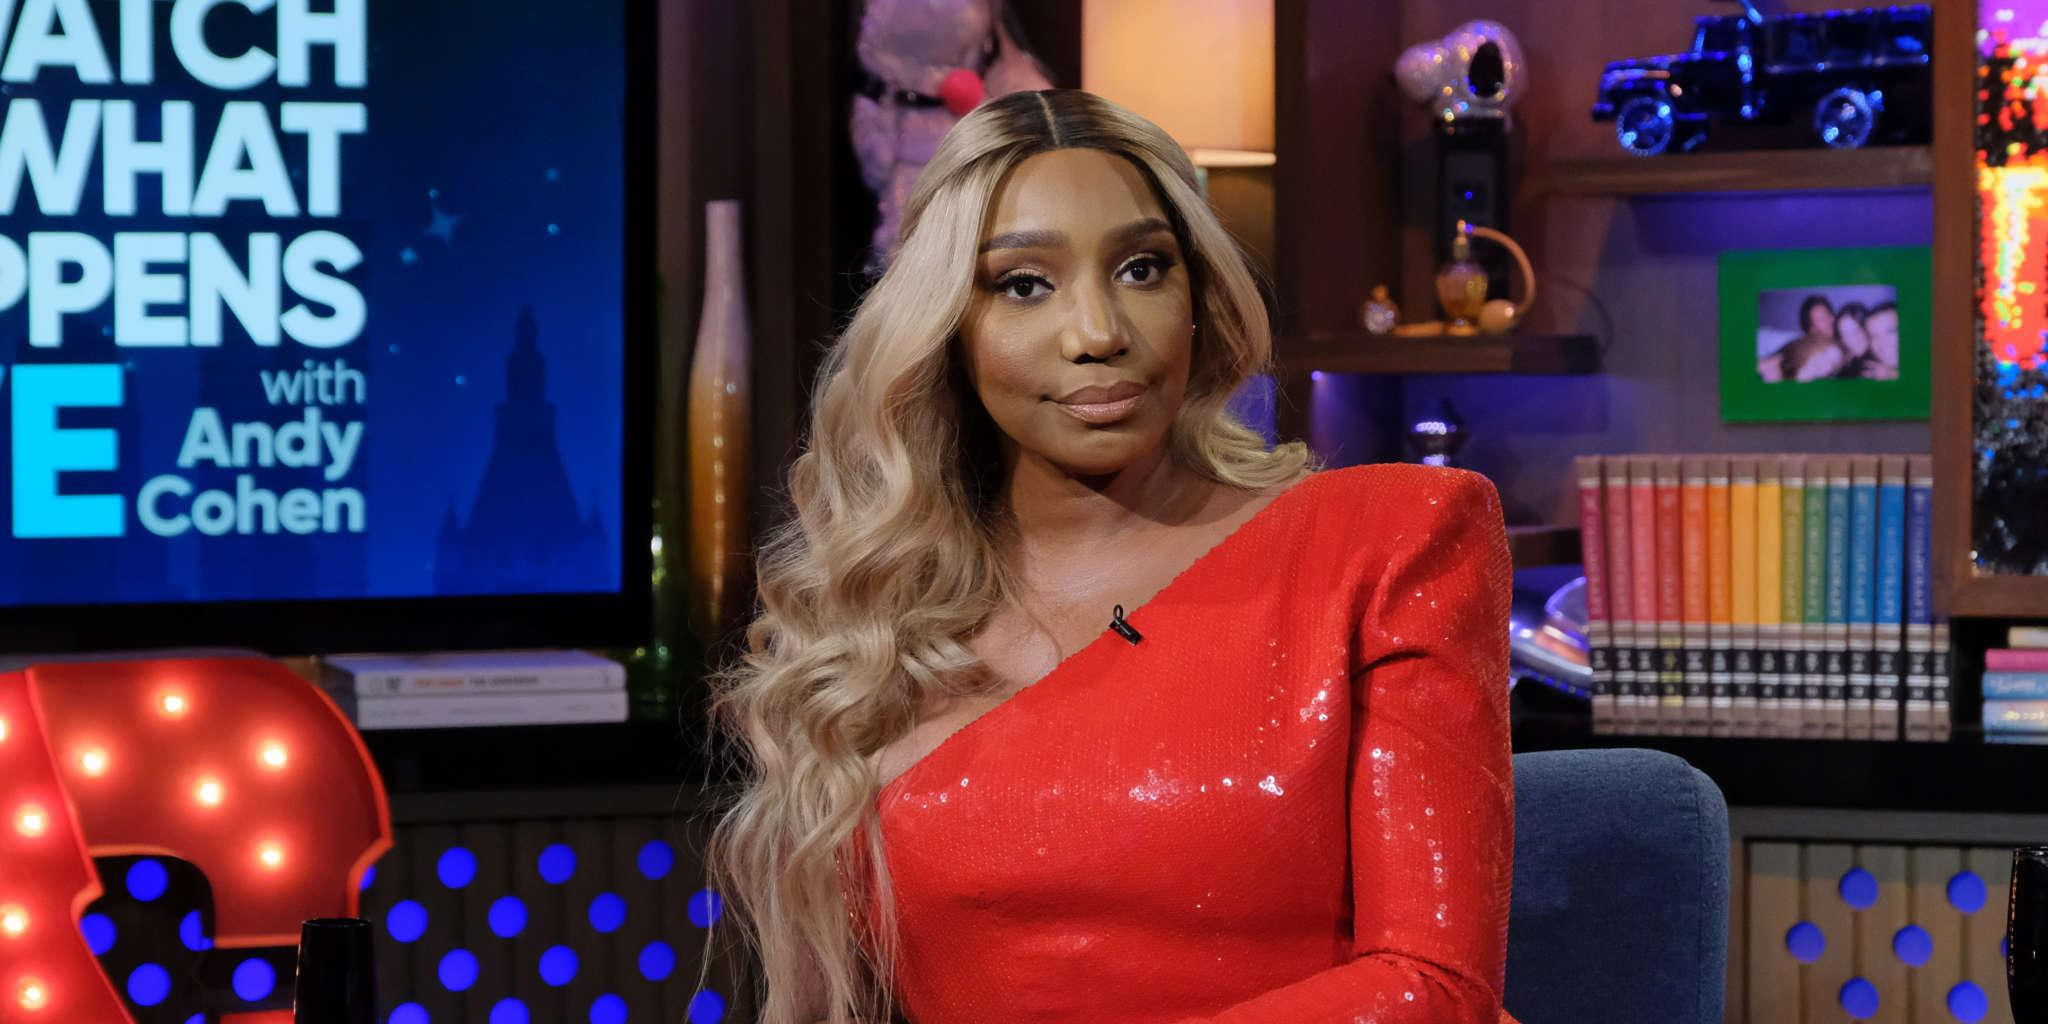 NeNe Leakes Finally Gives Fans A Sneak Peek Of Her Atlanta Lounge! See The Video